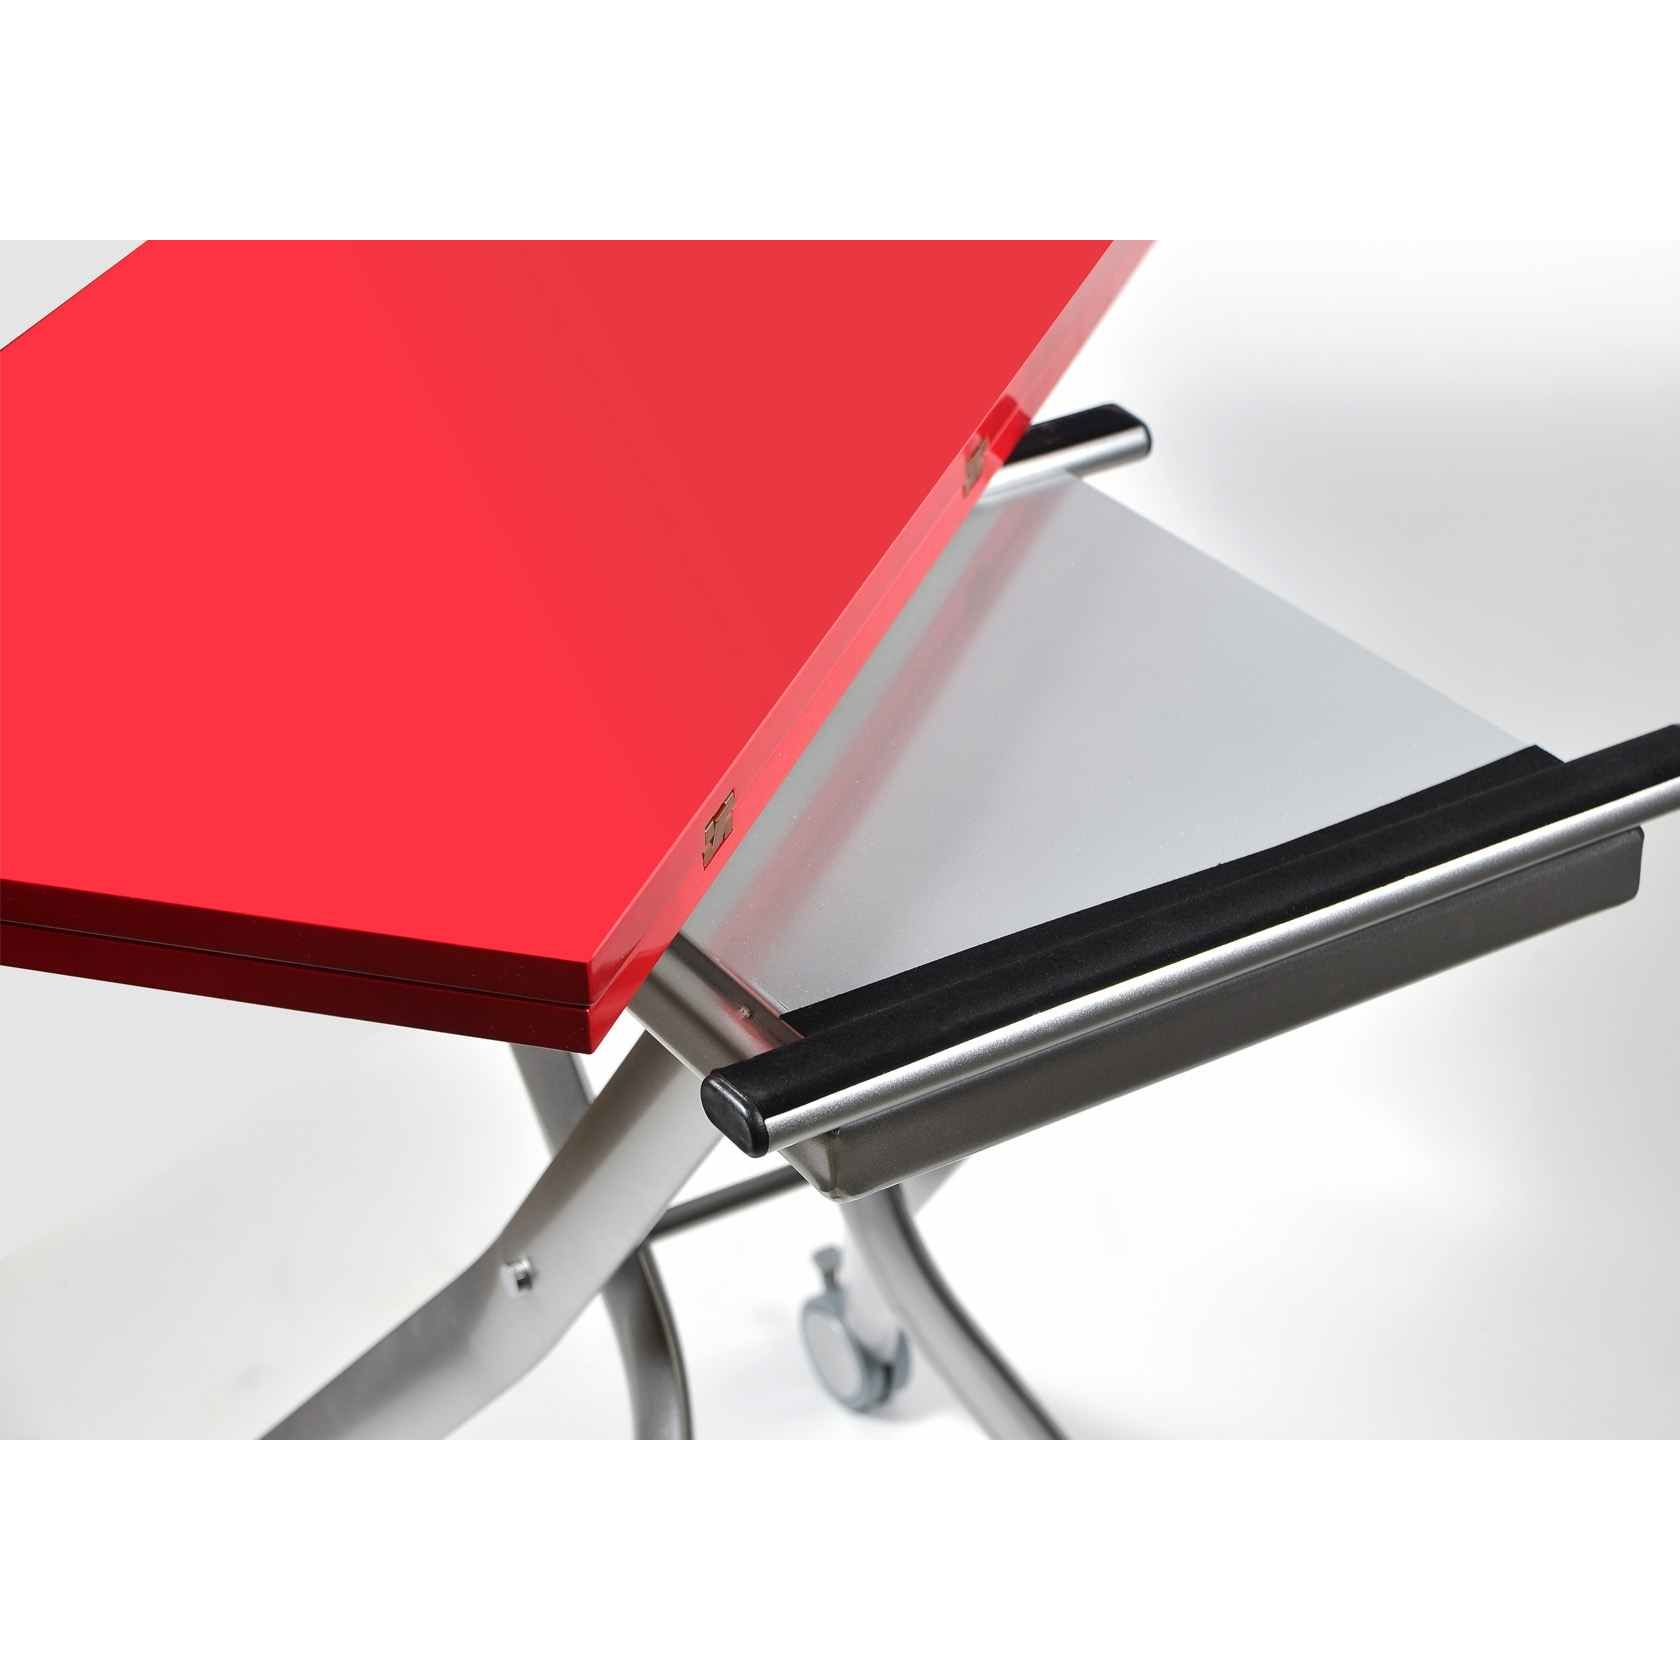 Deco in paris 4 table basse laquee rouge design relevable et extensible cruise table cruise - Table basse relevable rouge ...